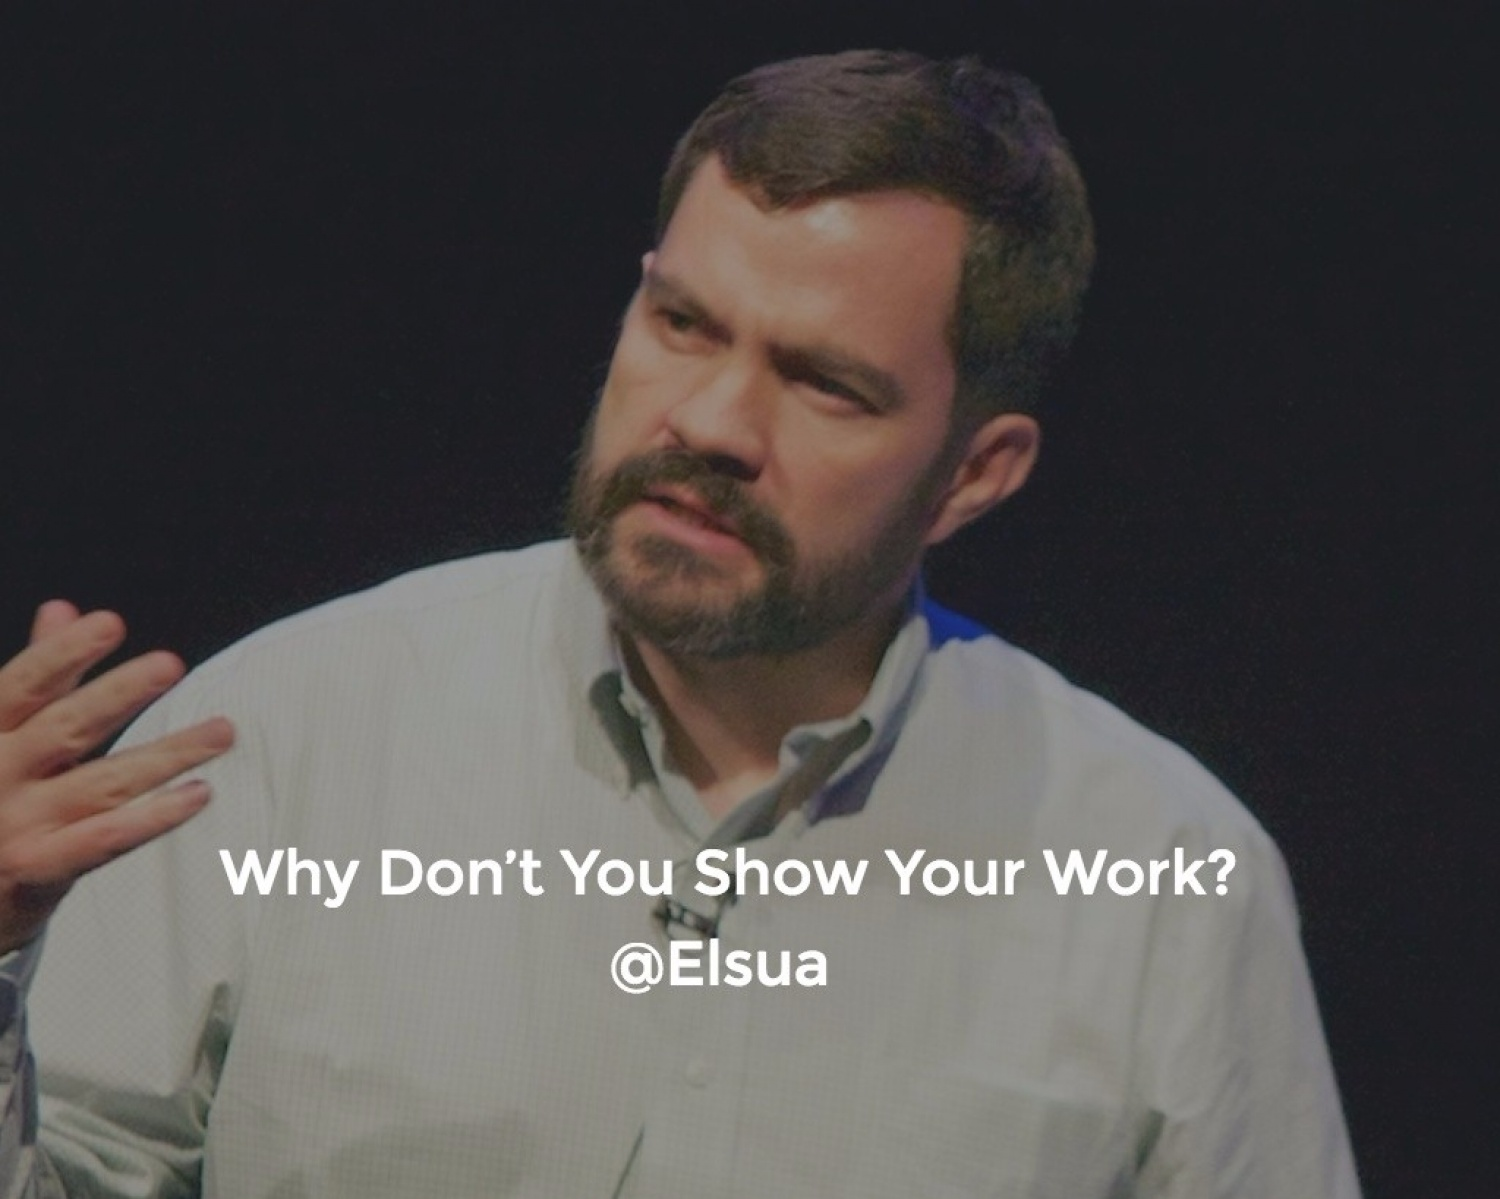 Why Don't You Show Your Work?